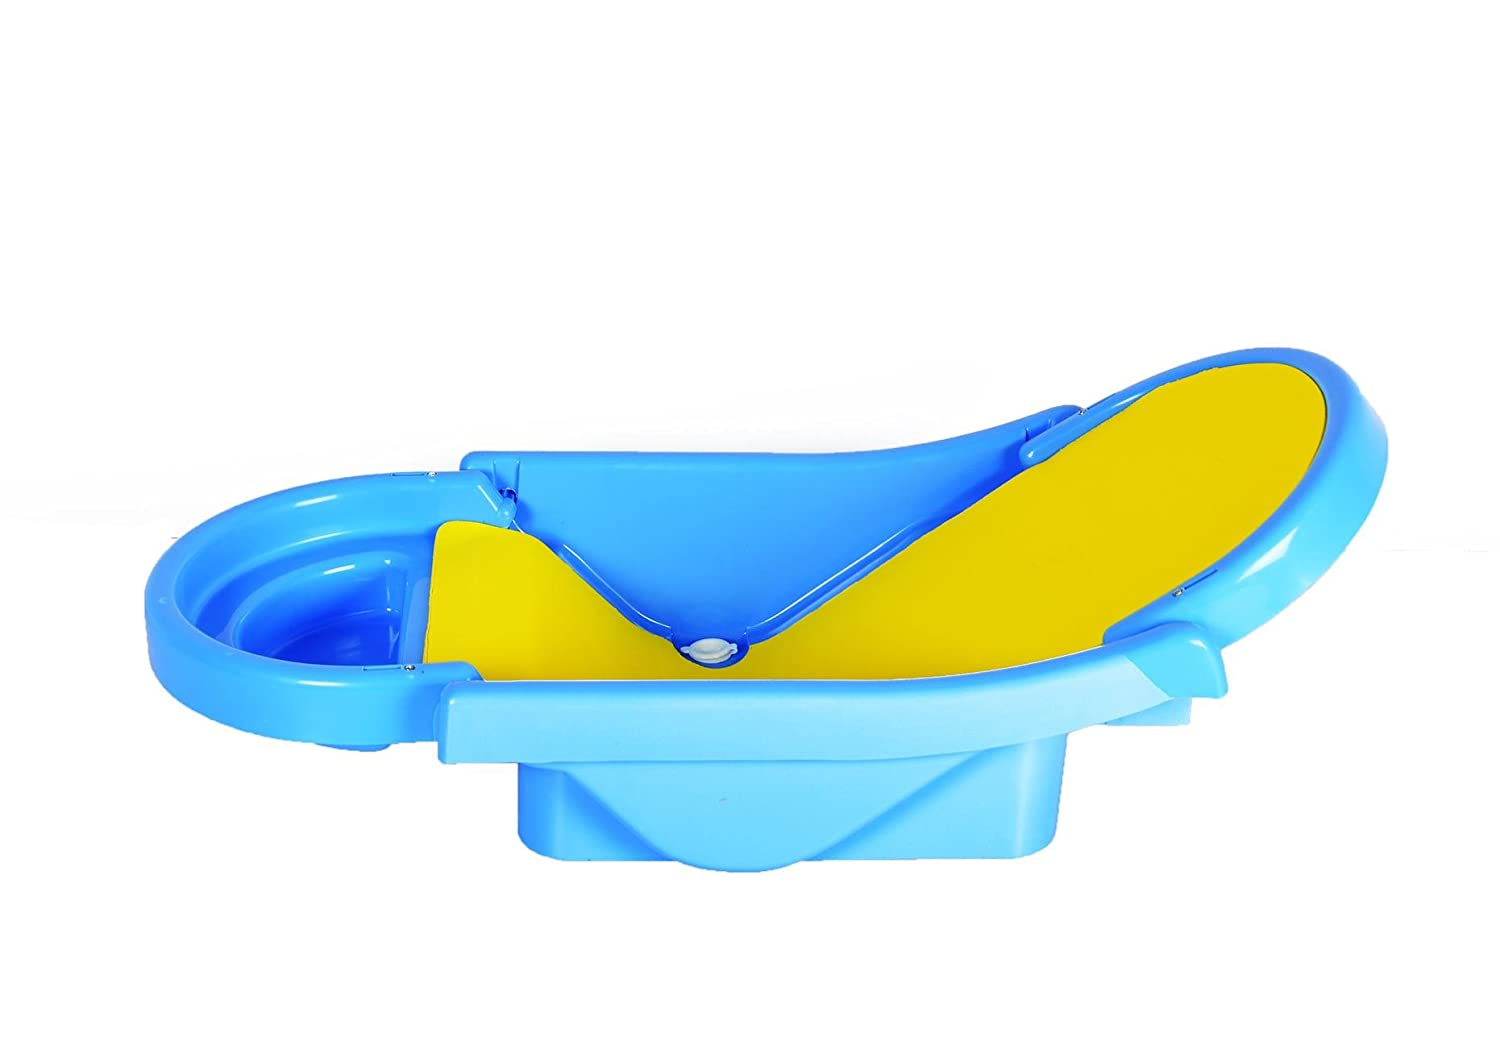 Buy Others Baby Bath Tub Foldable Online at Low Prices in India ...